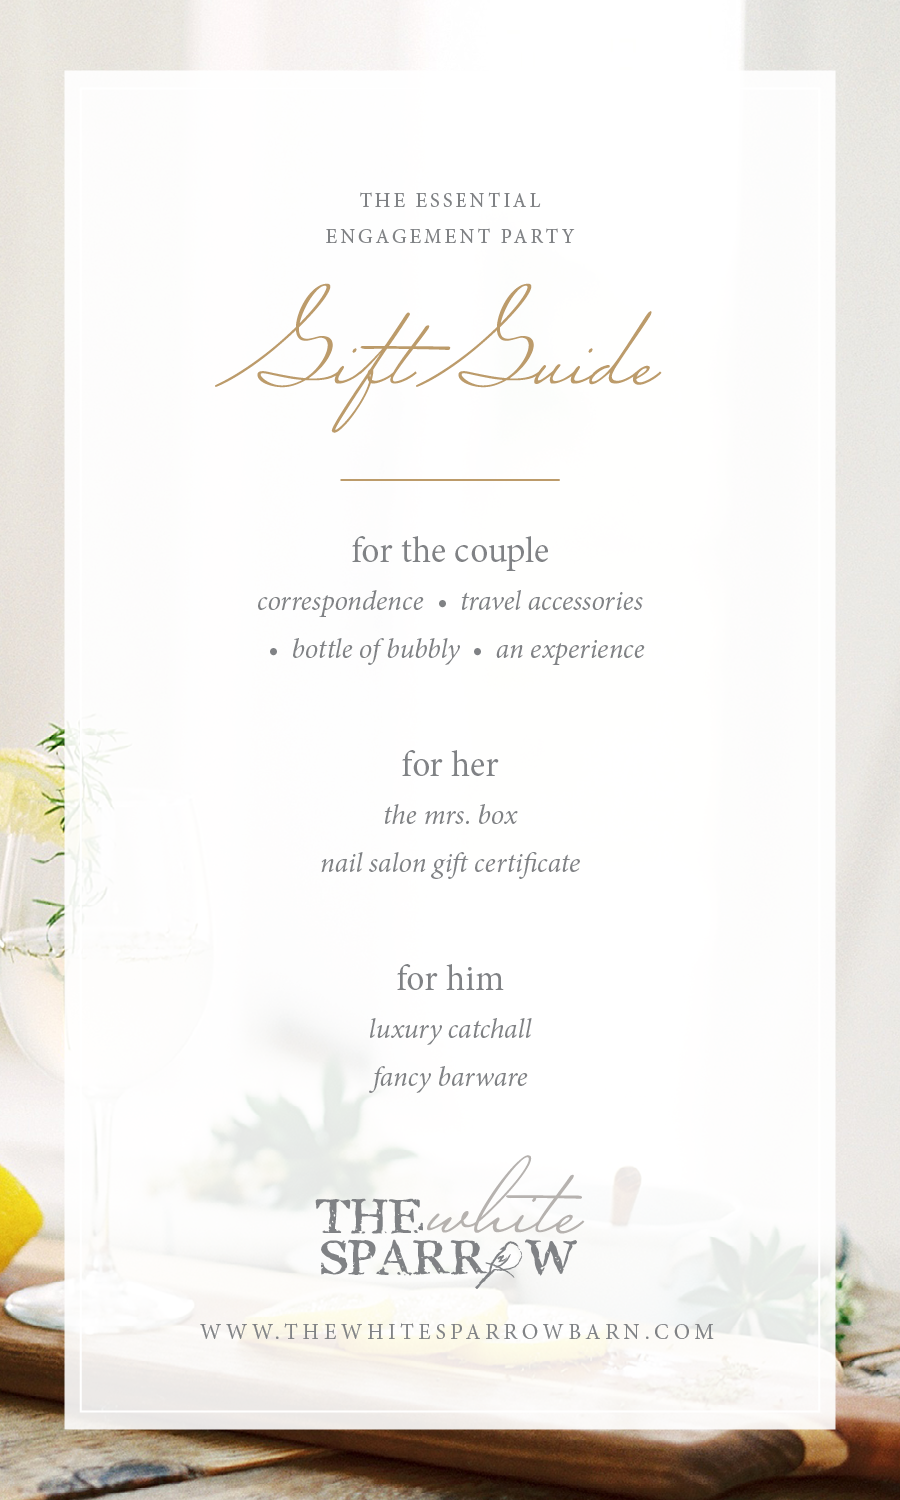 Barn Wedding Dallas | Engagement Party Gift Guide, The White Sparrow